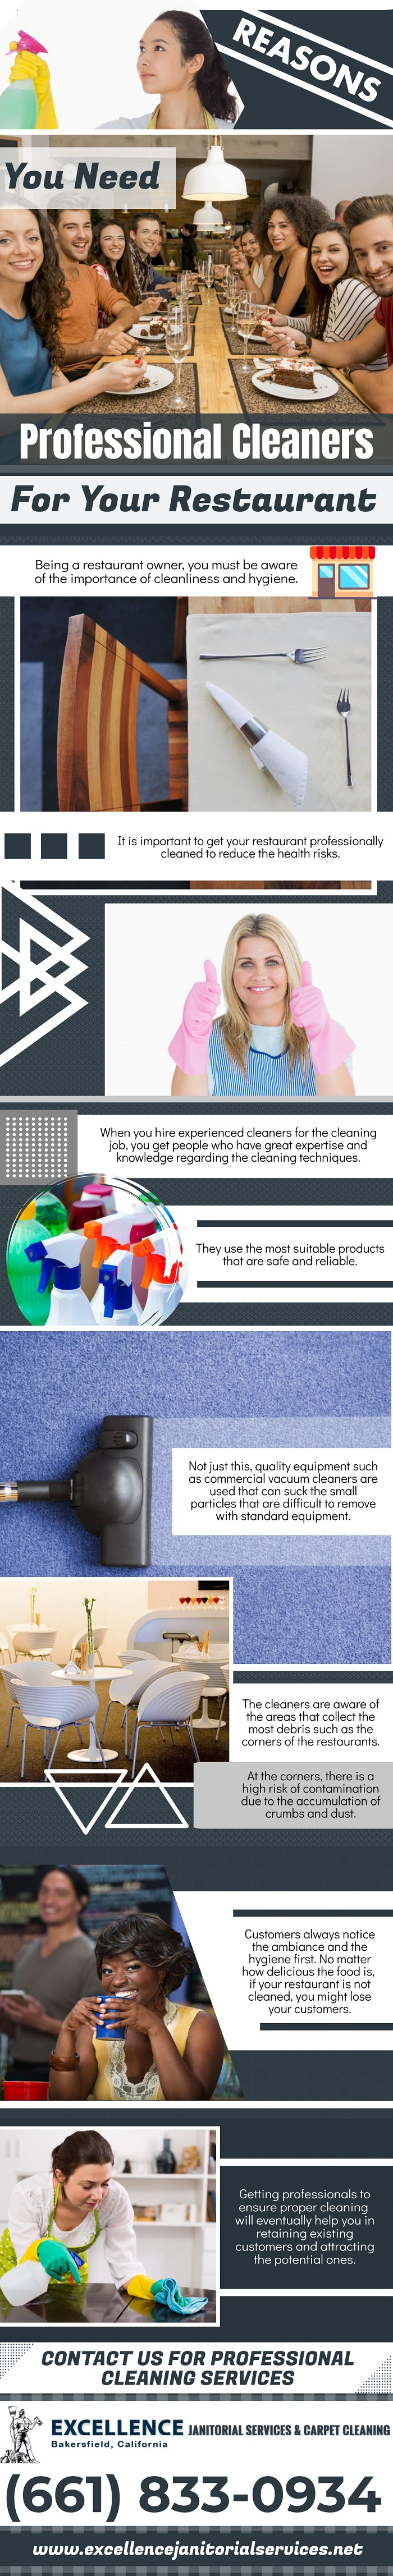 Reasons You Need Professional Cleaners - Infographic